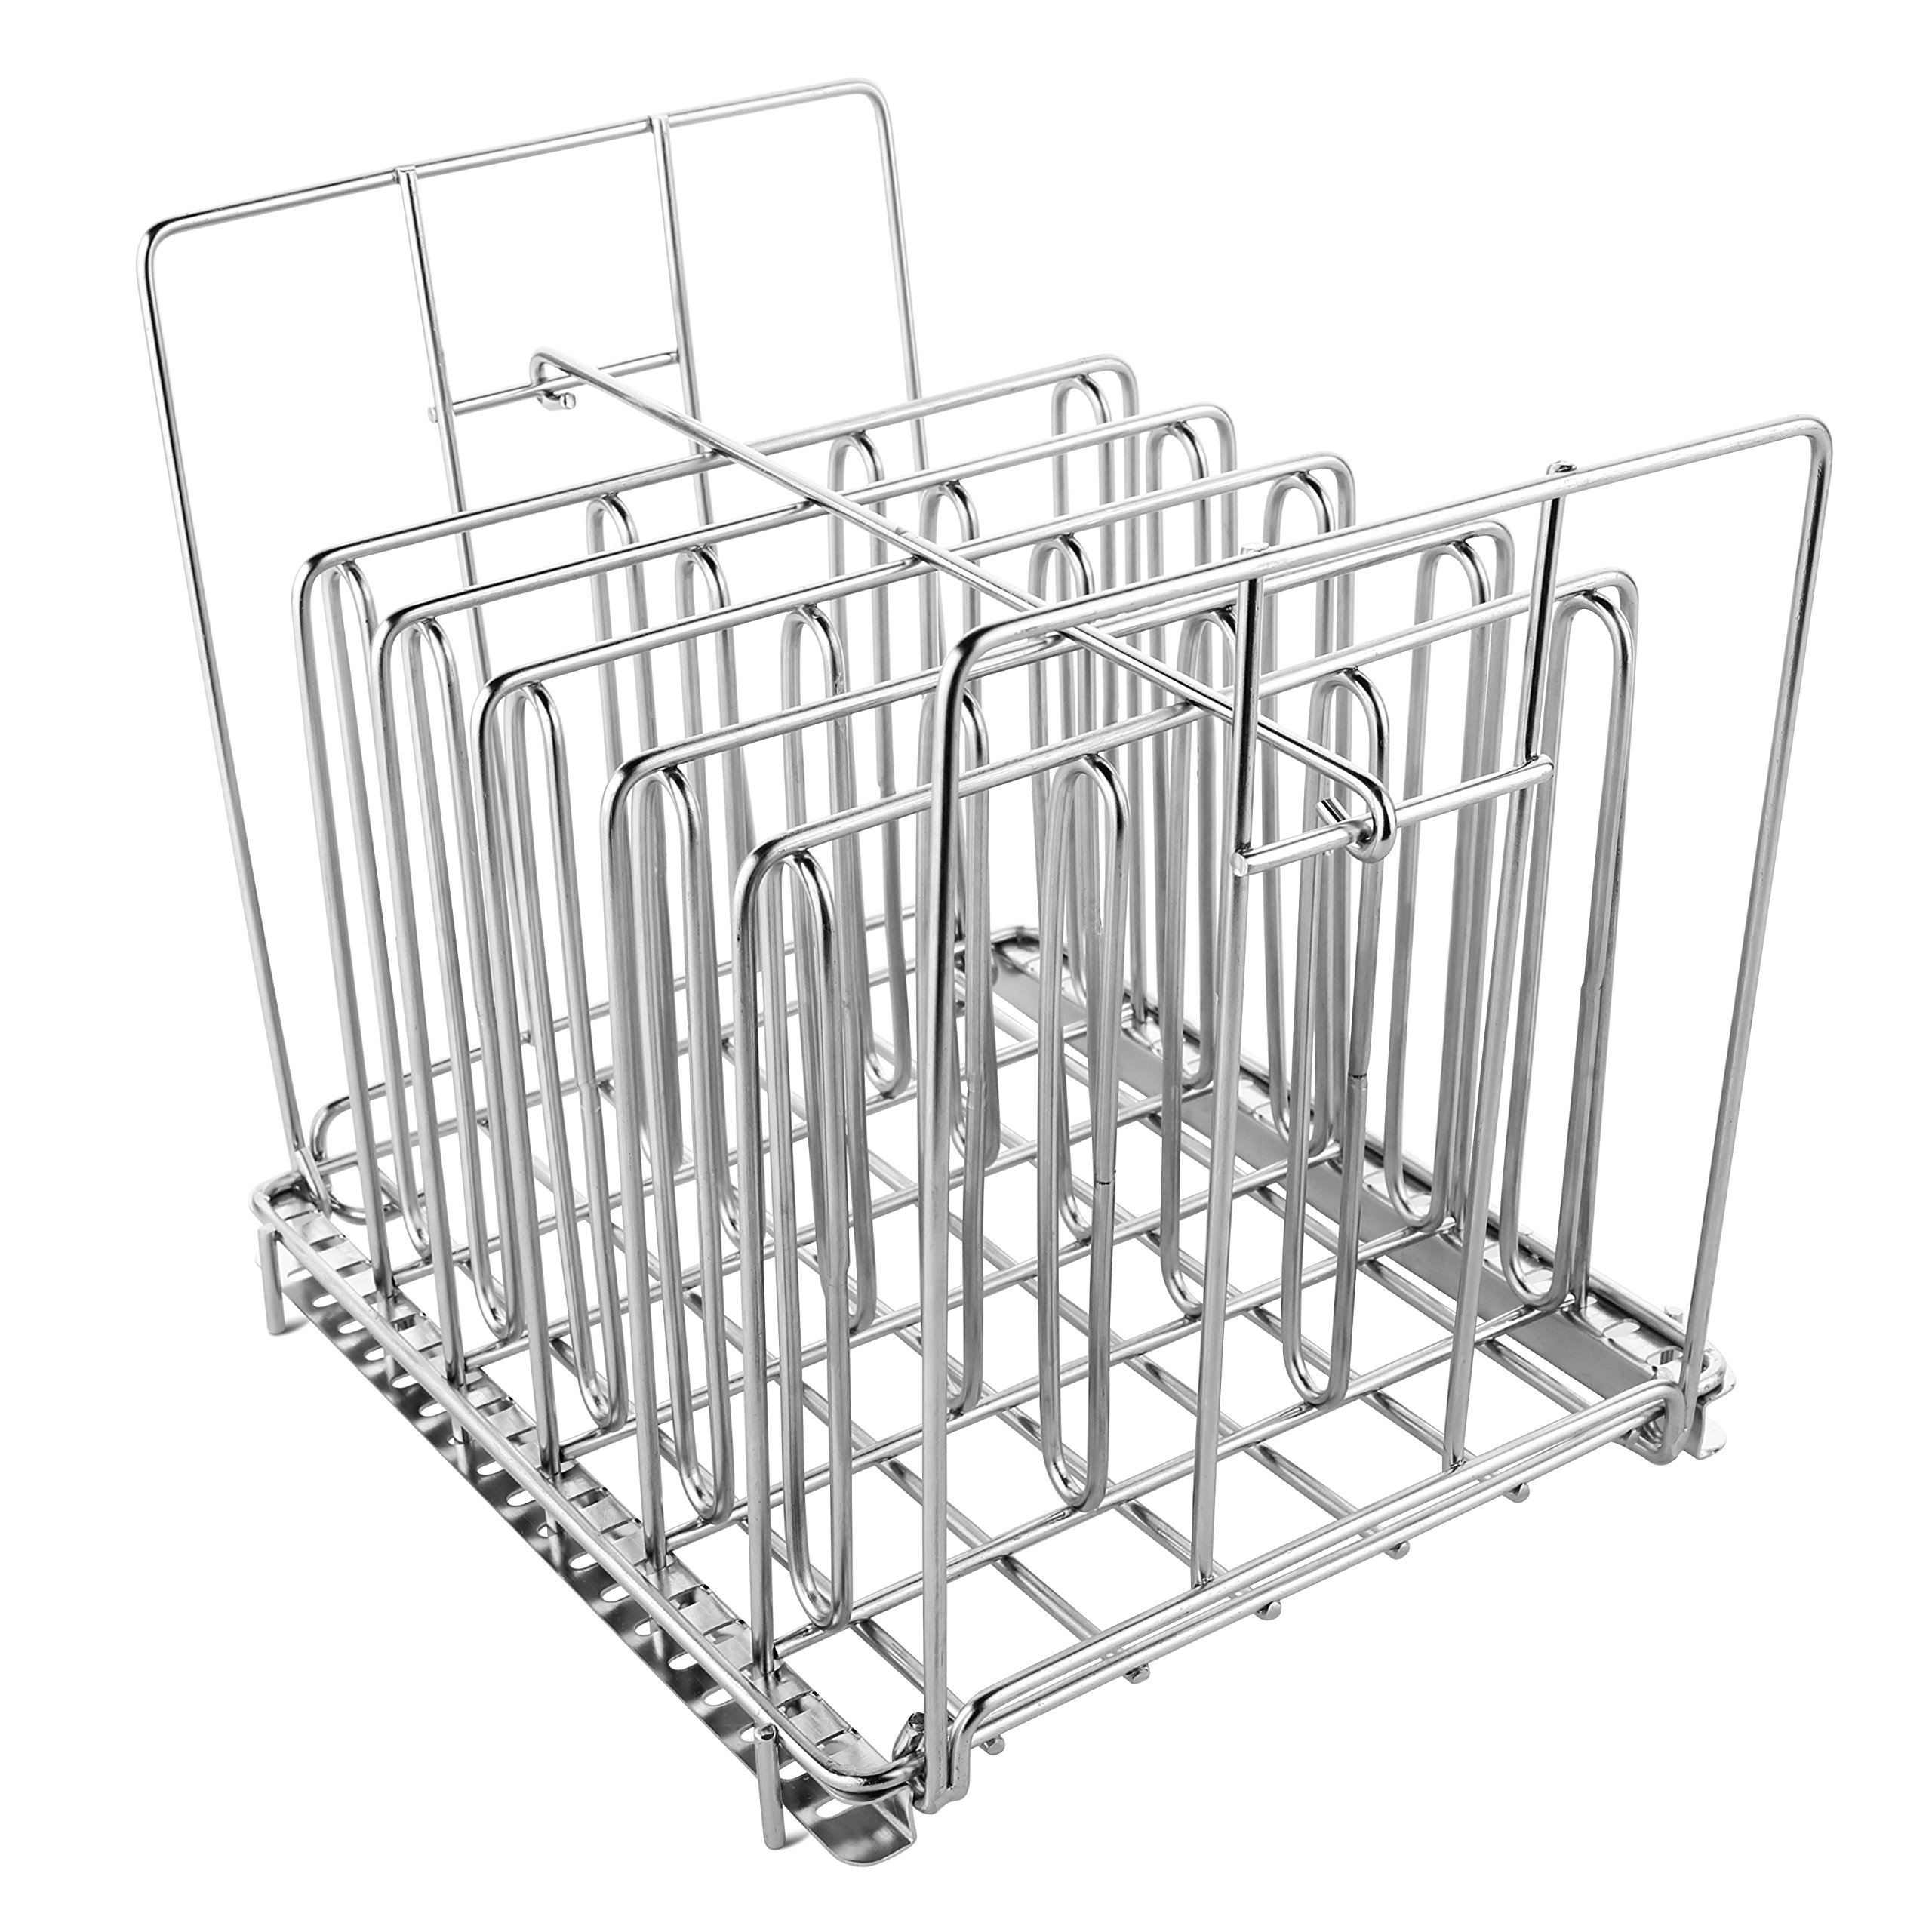 Stainless Steel Sous Vide Rack with Adjustable No-Float Top Bar for Most 12qt Containers by Geesta